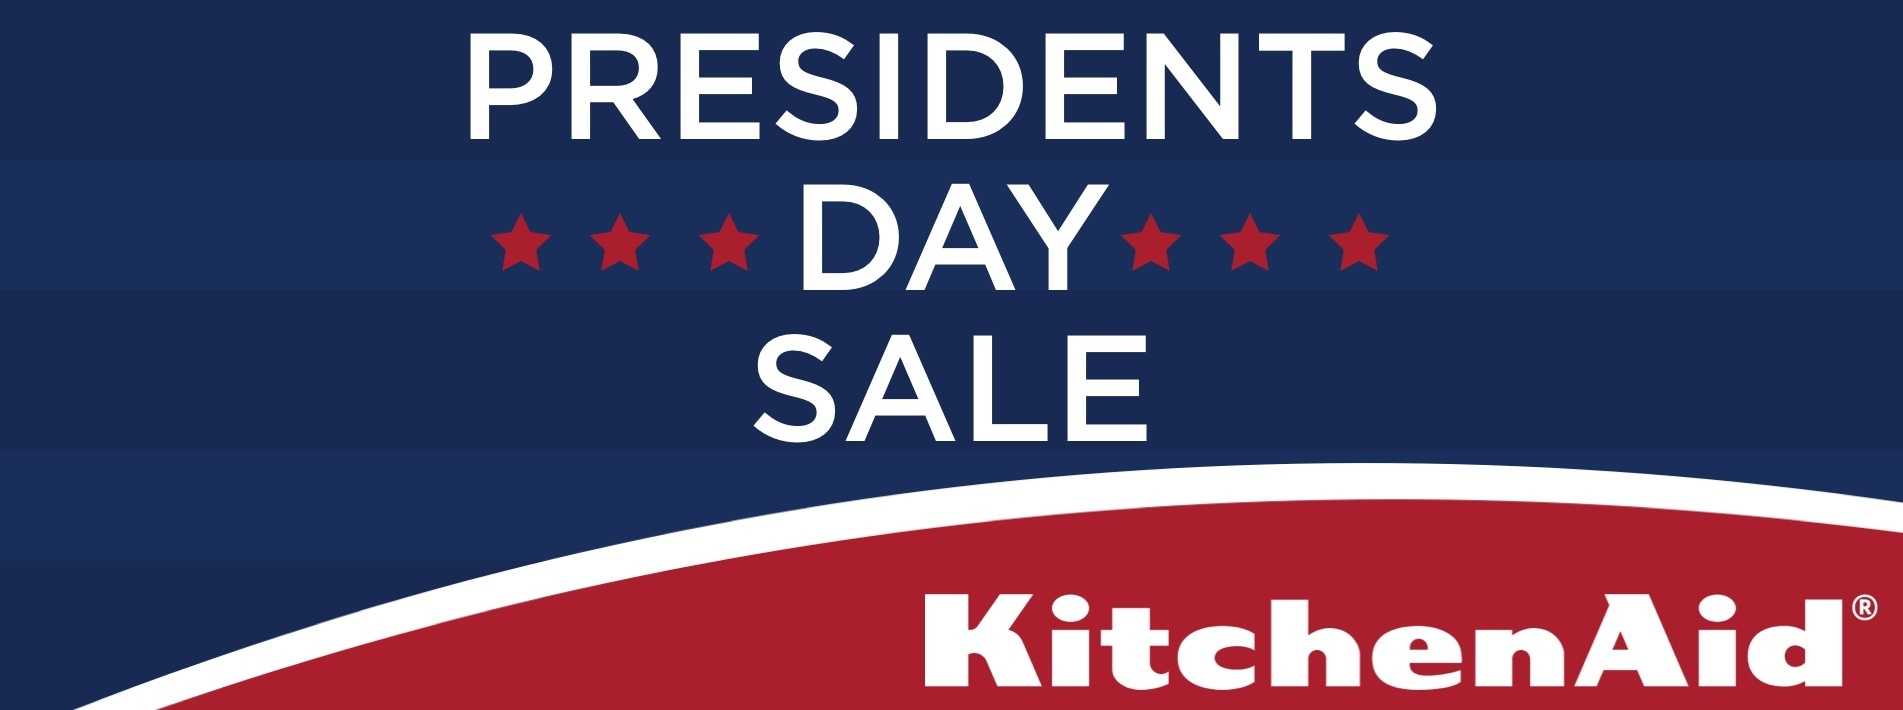 KitchenAid-Presidents-Day-2021